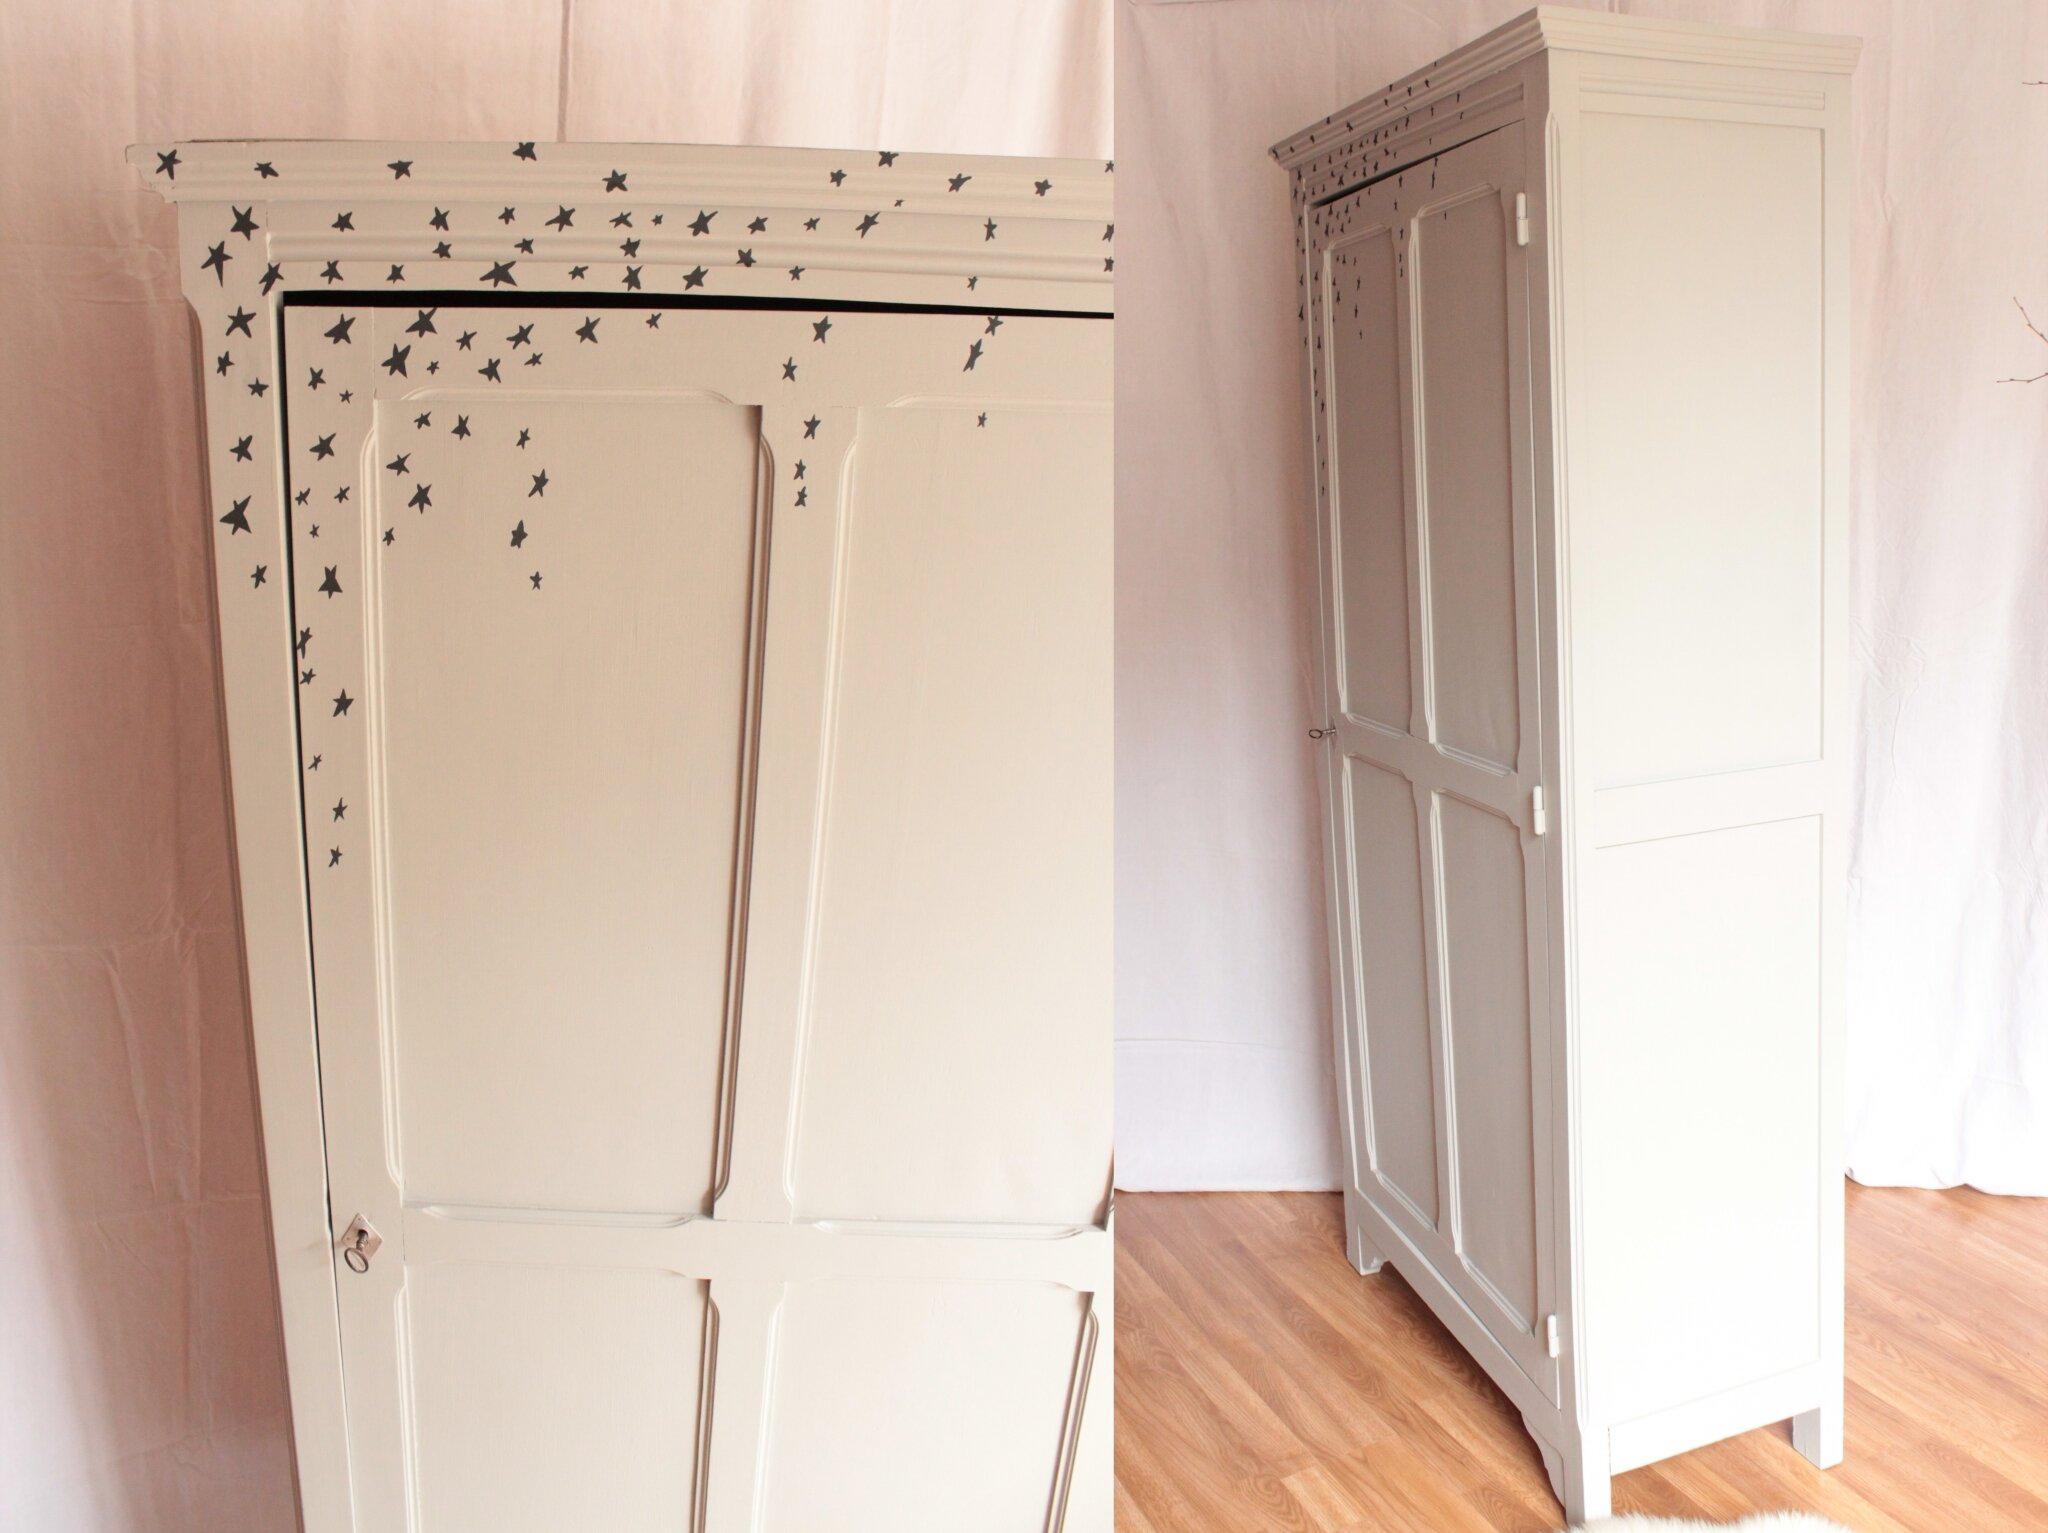 armoire parisienne une porte trendy little. Black Bedroom Furniture Sets. Home Design Ideas